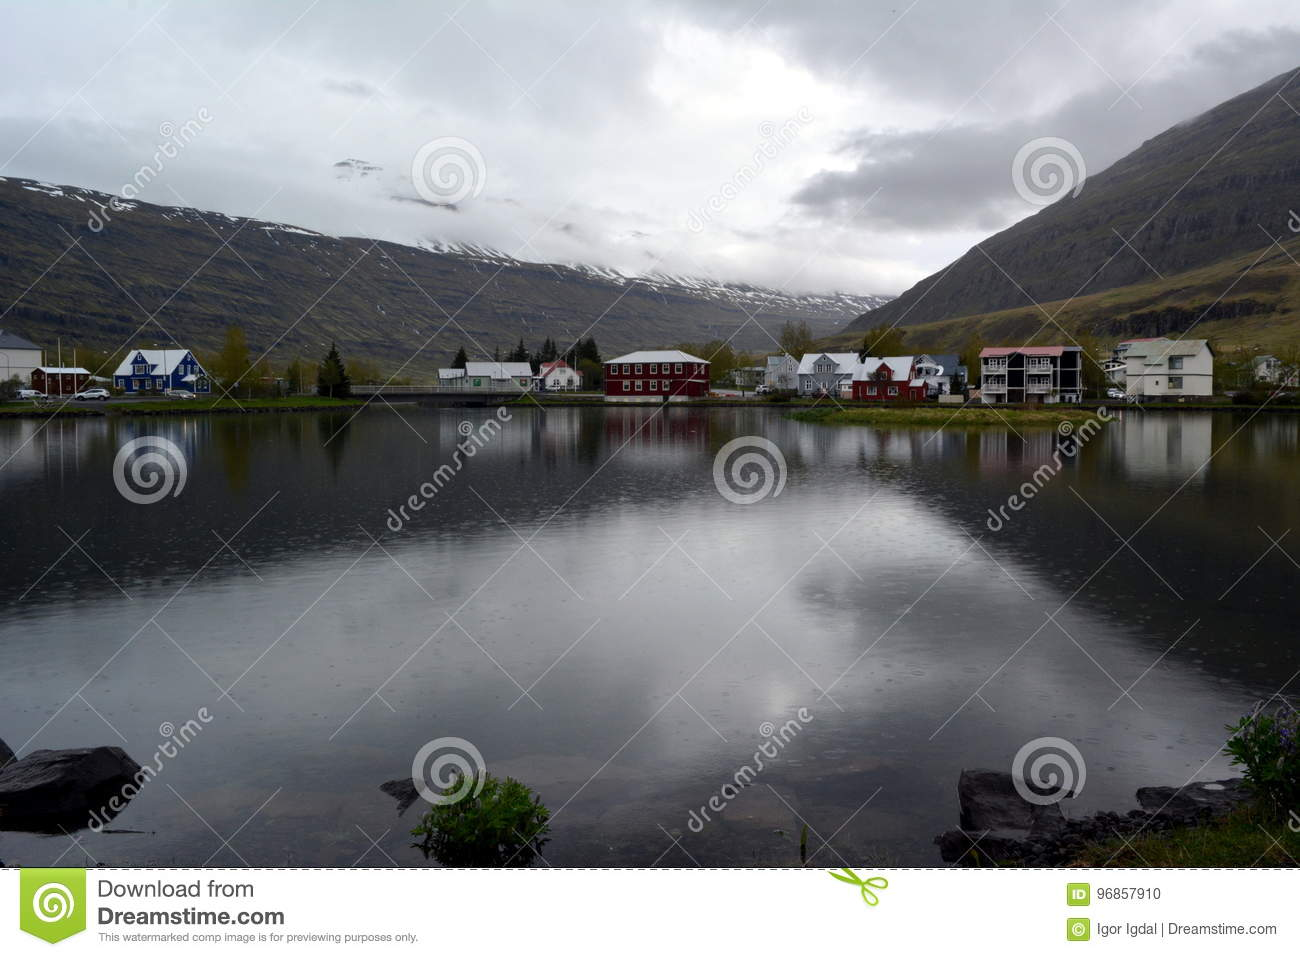 Small town of Seydisfjörður on the shore of the lake in the west of Iceland